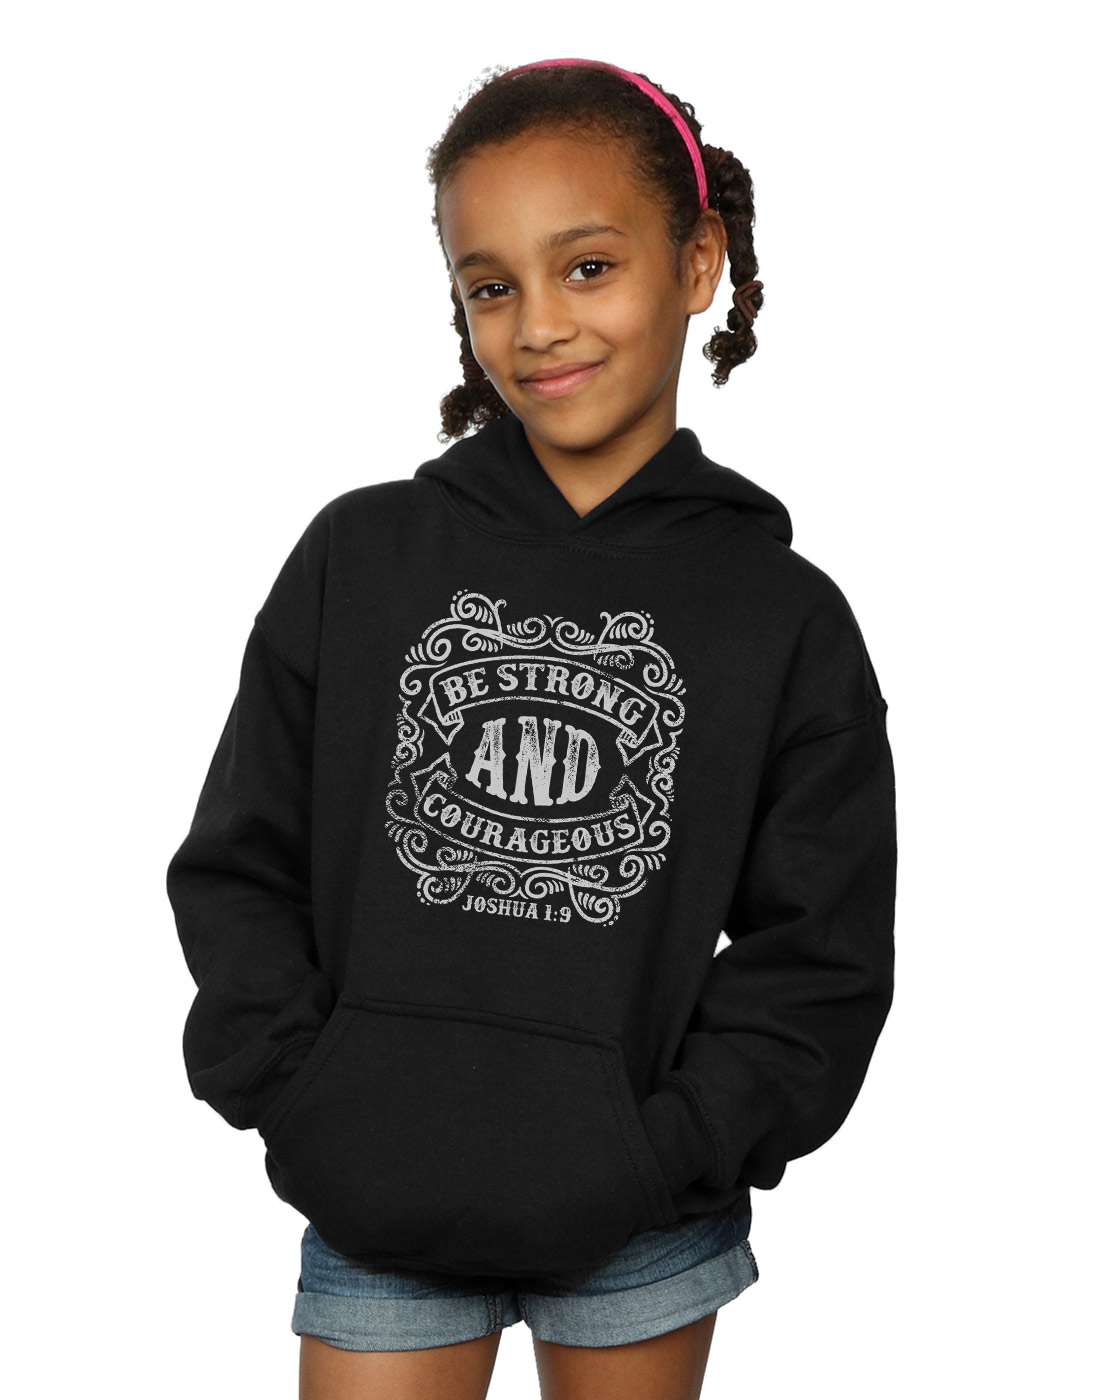 ABSOLUTECULT Drewbacca Girls Be Strong and Wait for The Lord Sweatshirt